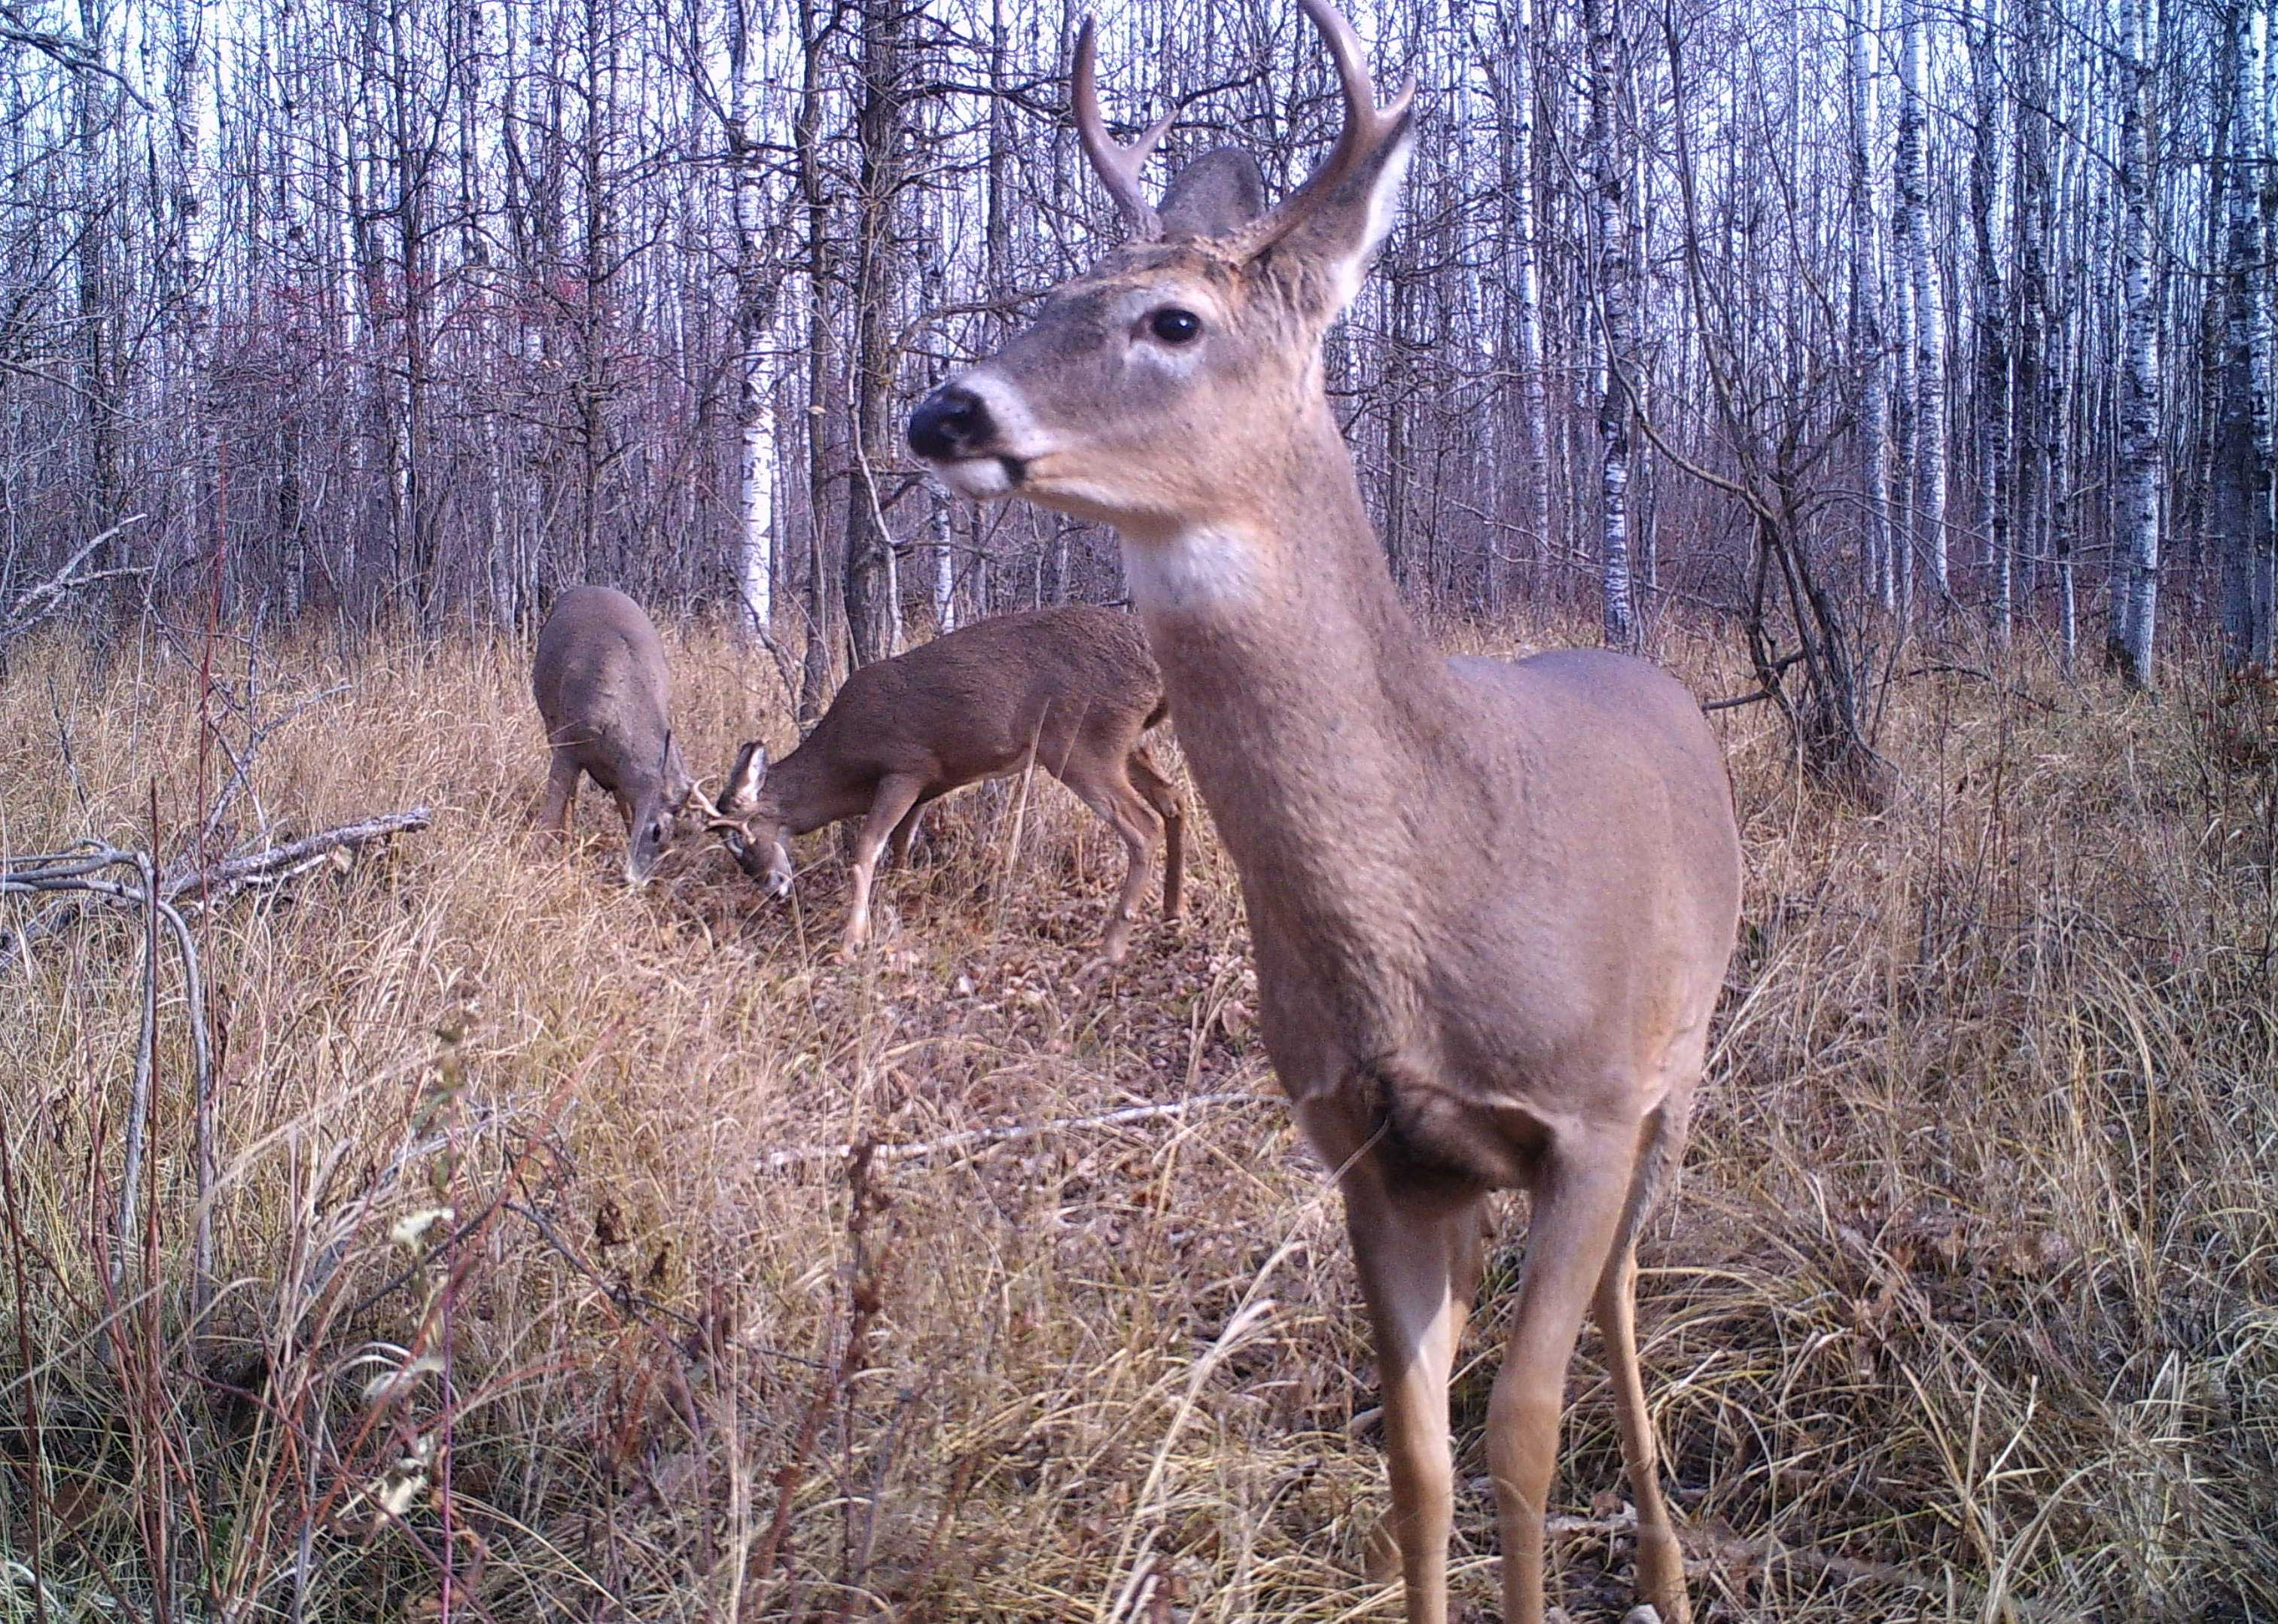 young bucks sparring as seen from a trail camera